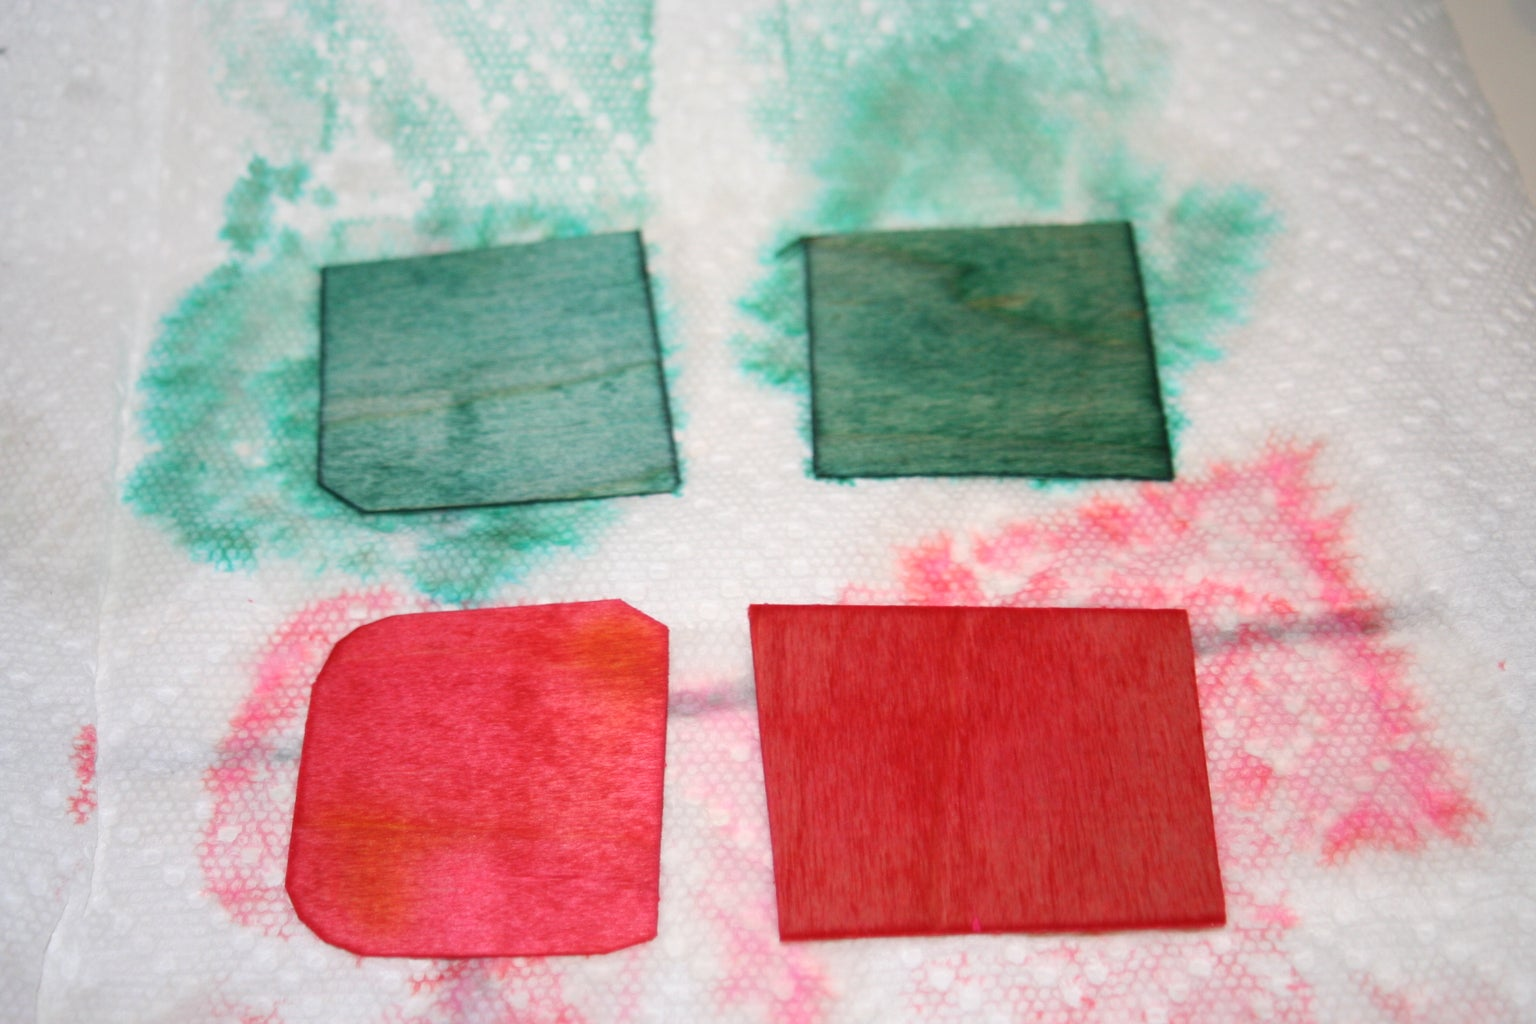 Dyeing the Wood